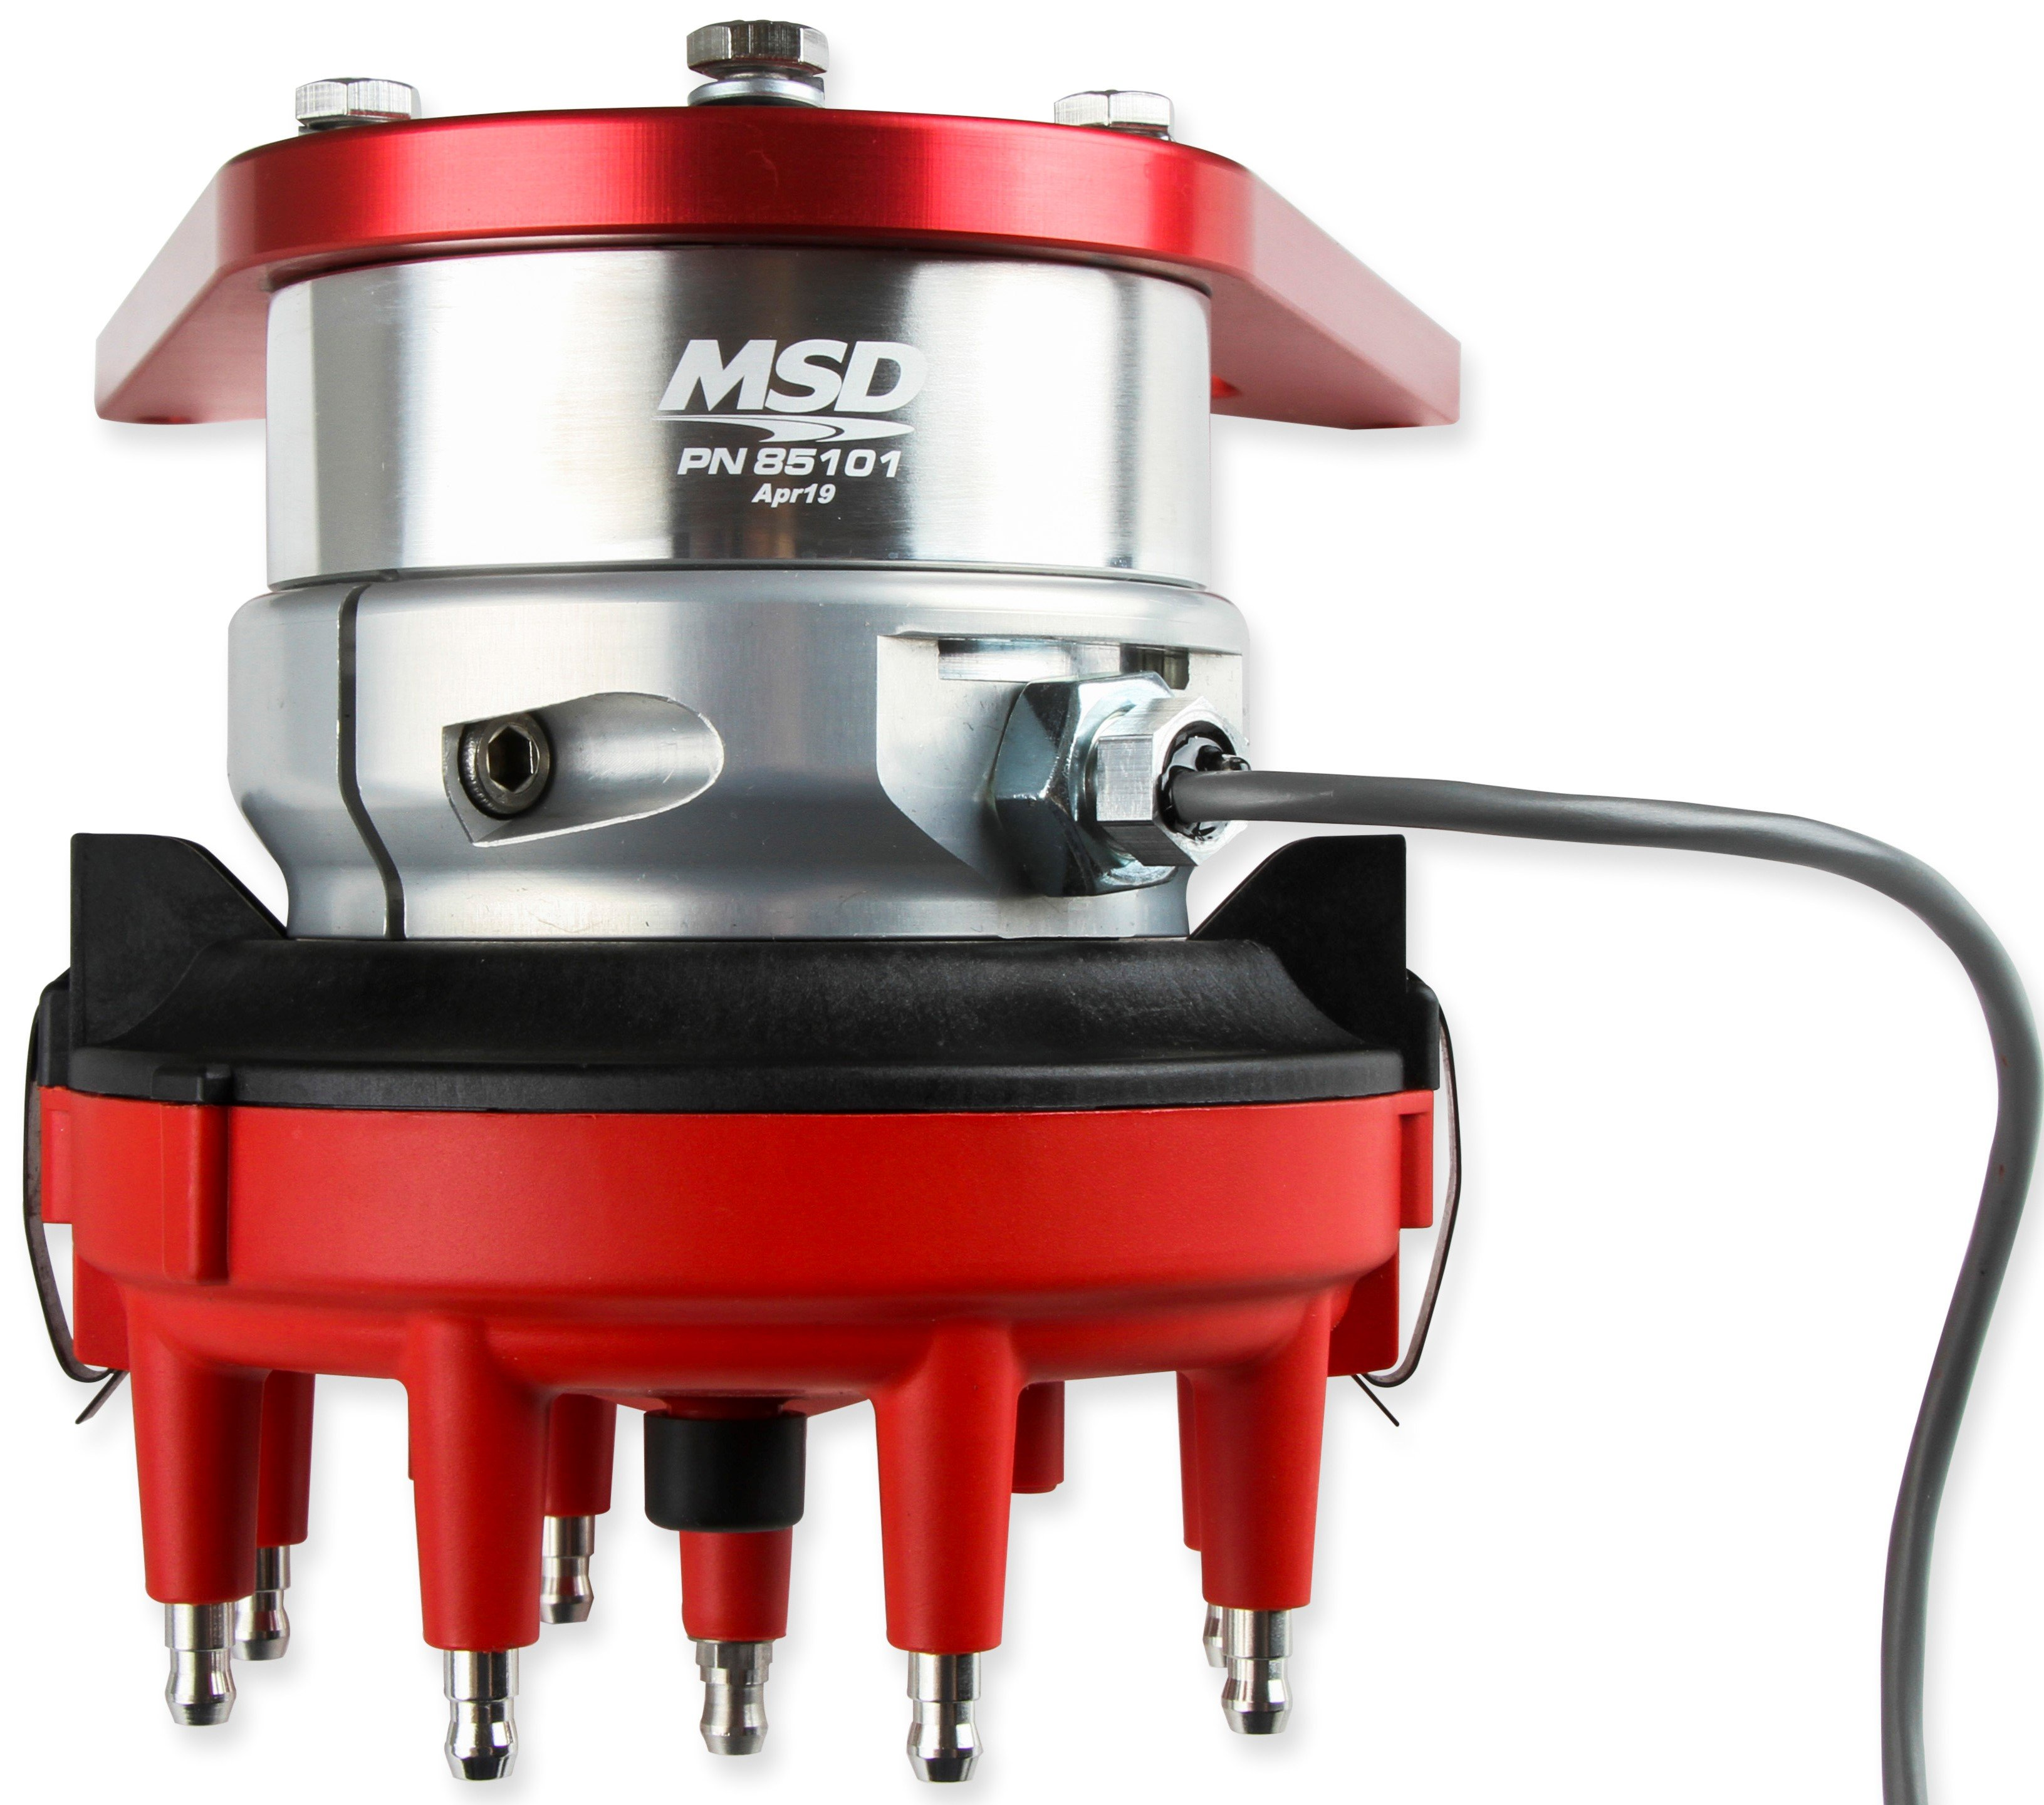 MSD Front Drive Distributors For Big Block and Small Block Chevys